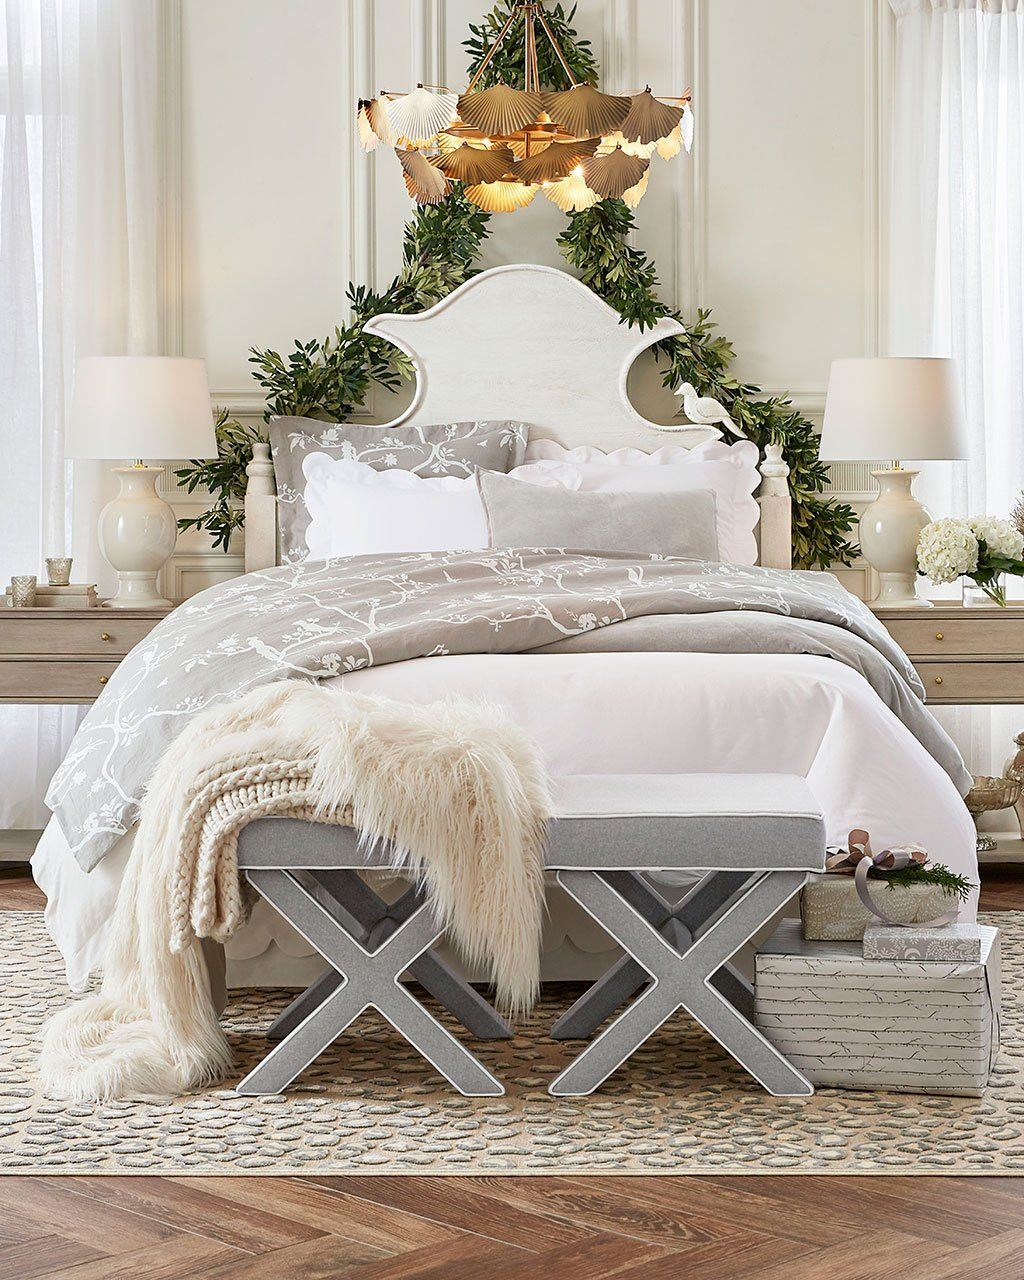 13 Creative Christmas Decorating Ideas How to Decorate